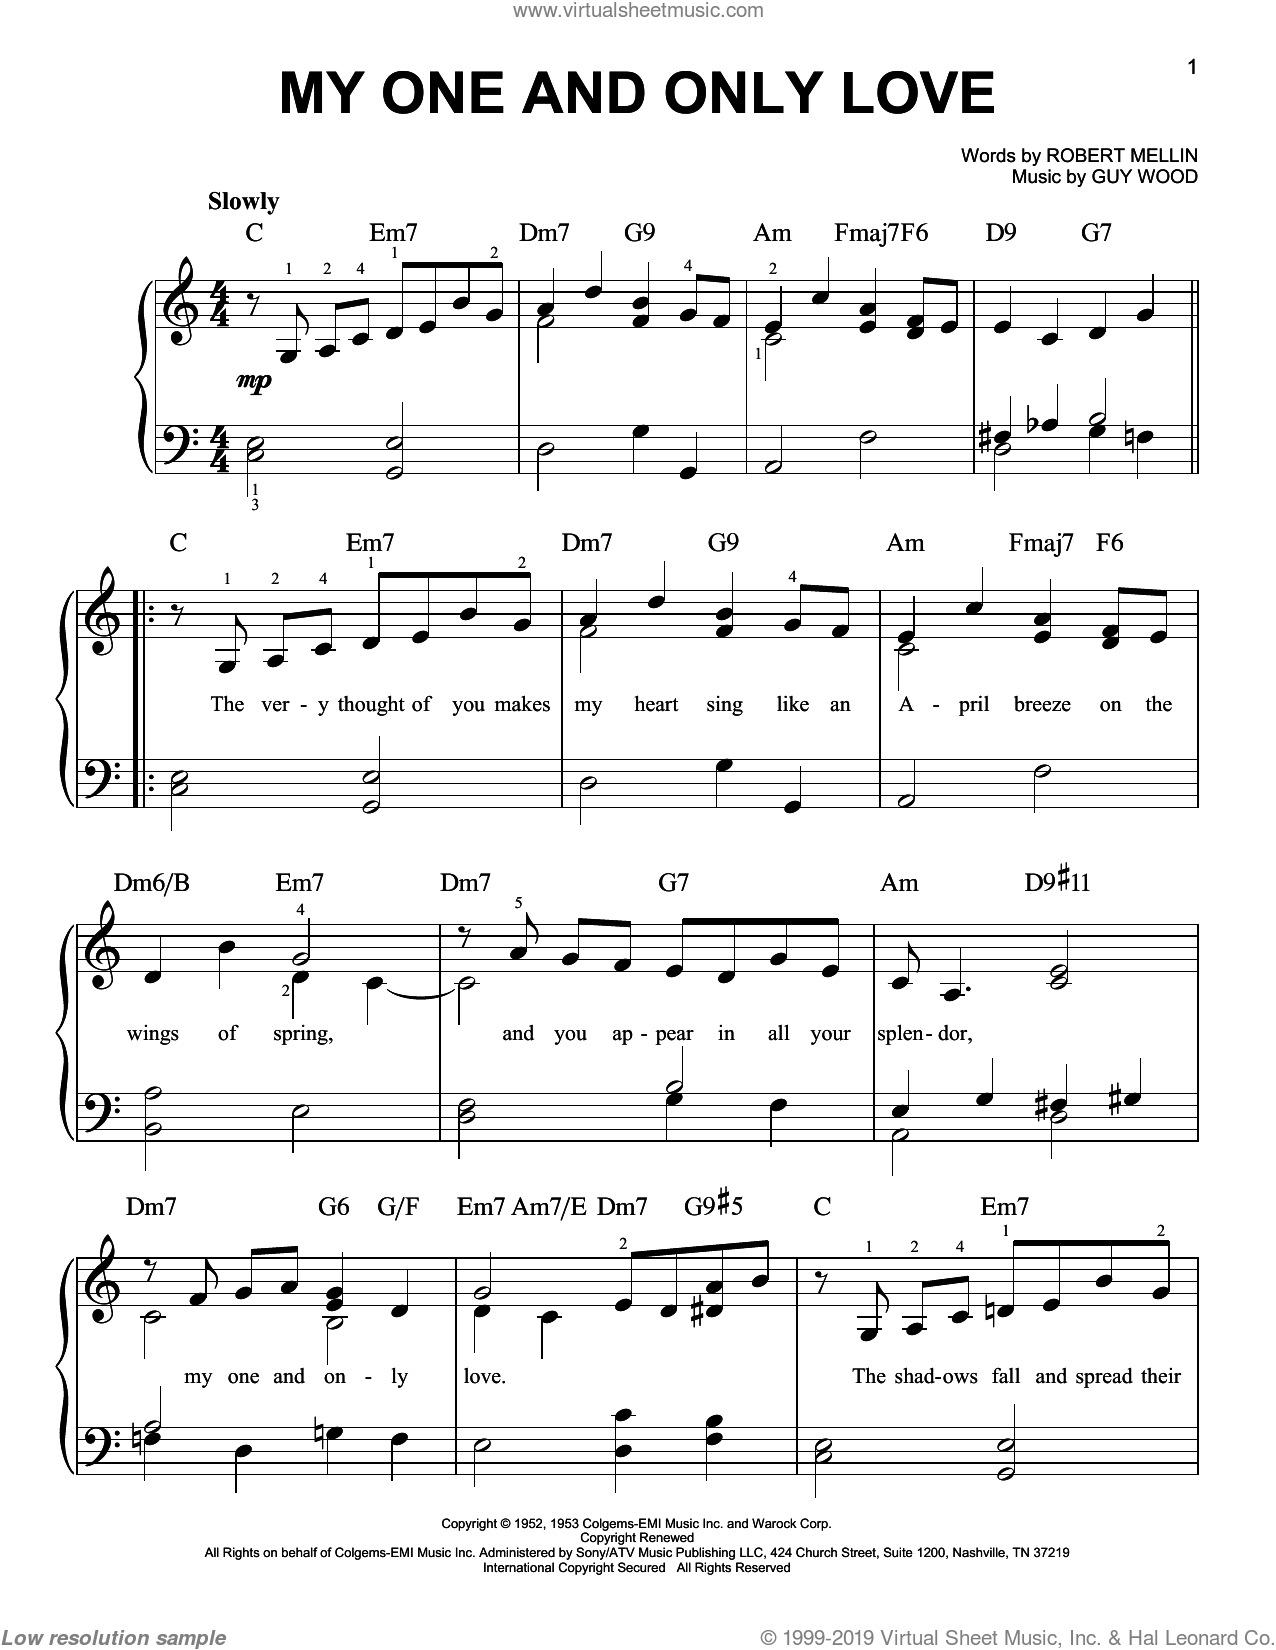 My One And Only Love sheet music for piano solo by Robert Mellin, Dean Martin, Frank Sinatra, John Coltrane, Louis Armstrong, Sonny Rollins and Guy Wood. Score Image Preview.